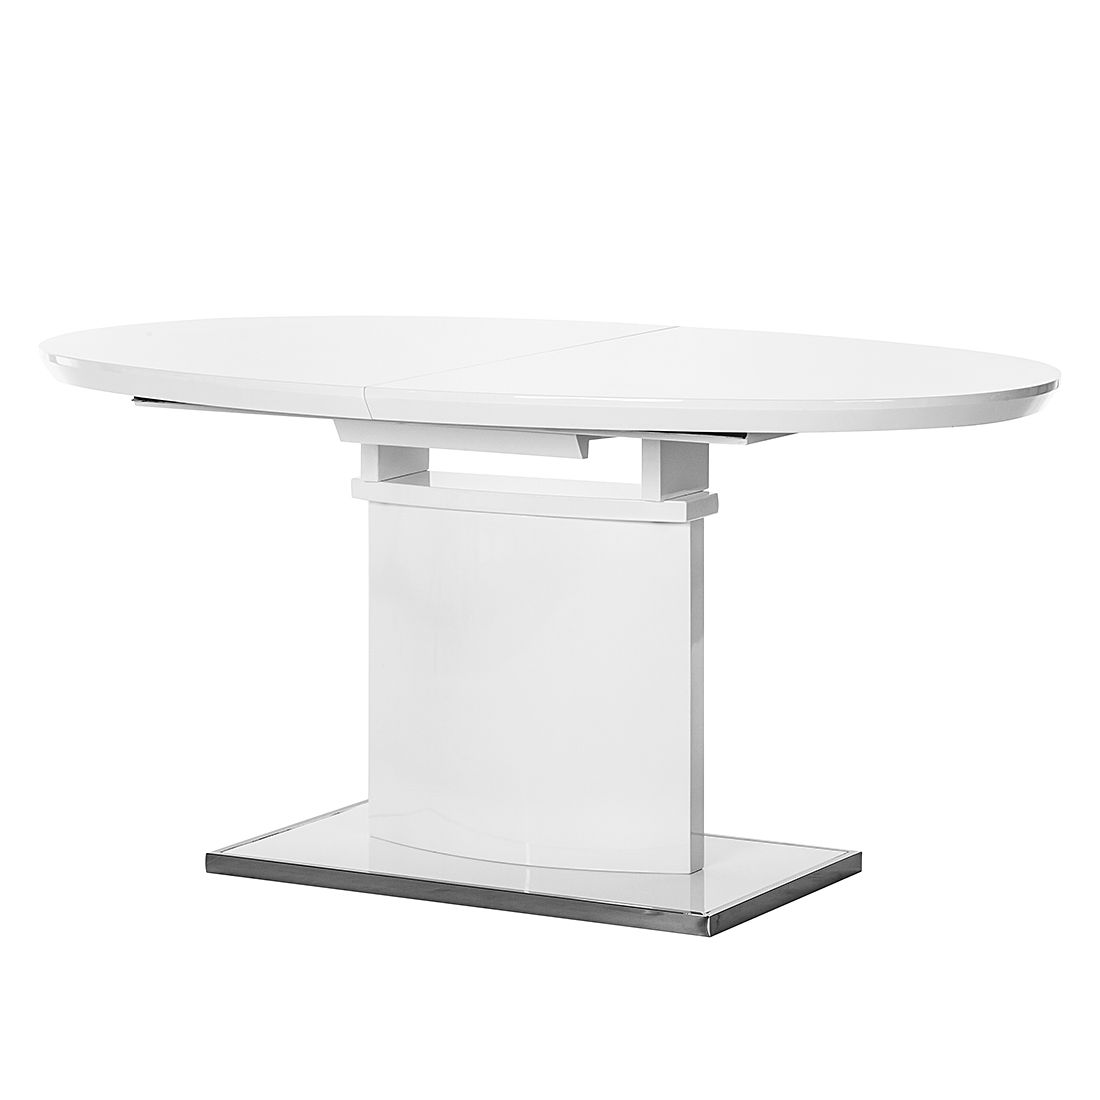 Table manger dorio extractible blanc brillant fredriks for Table extractible